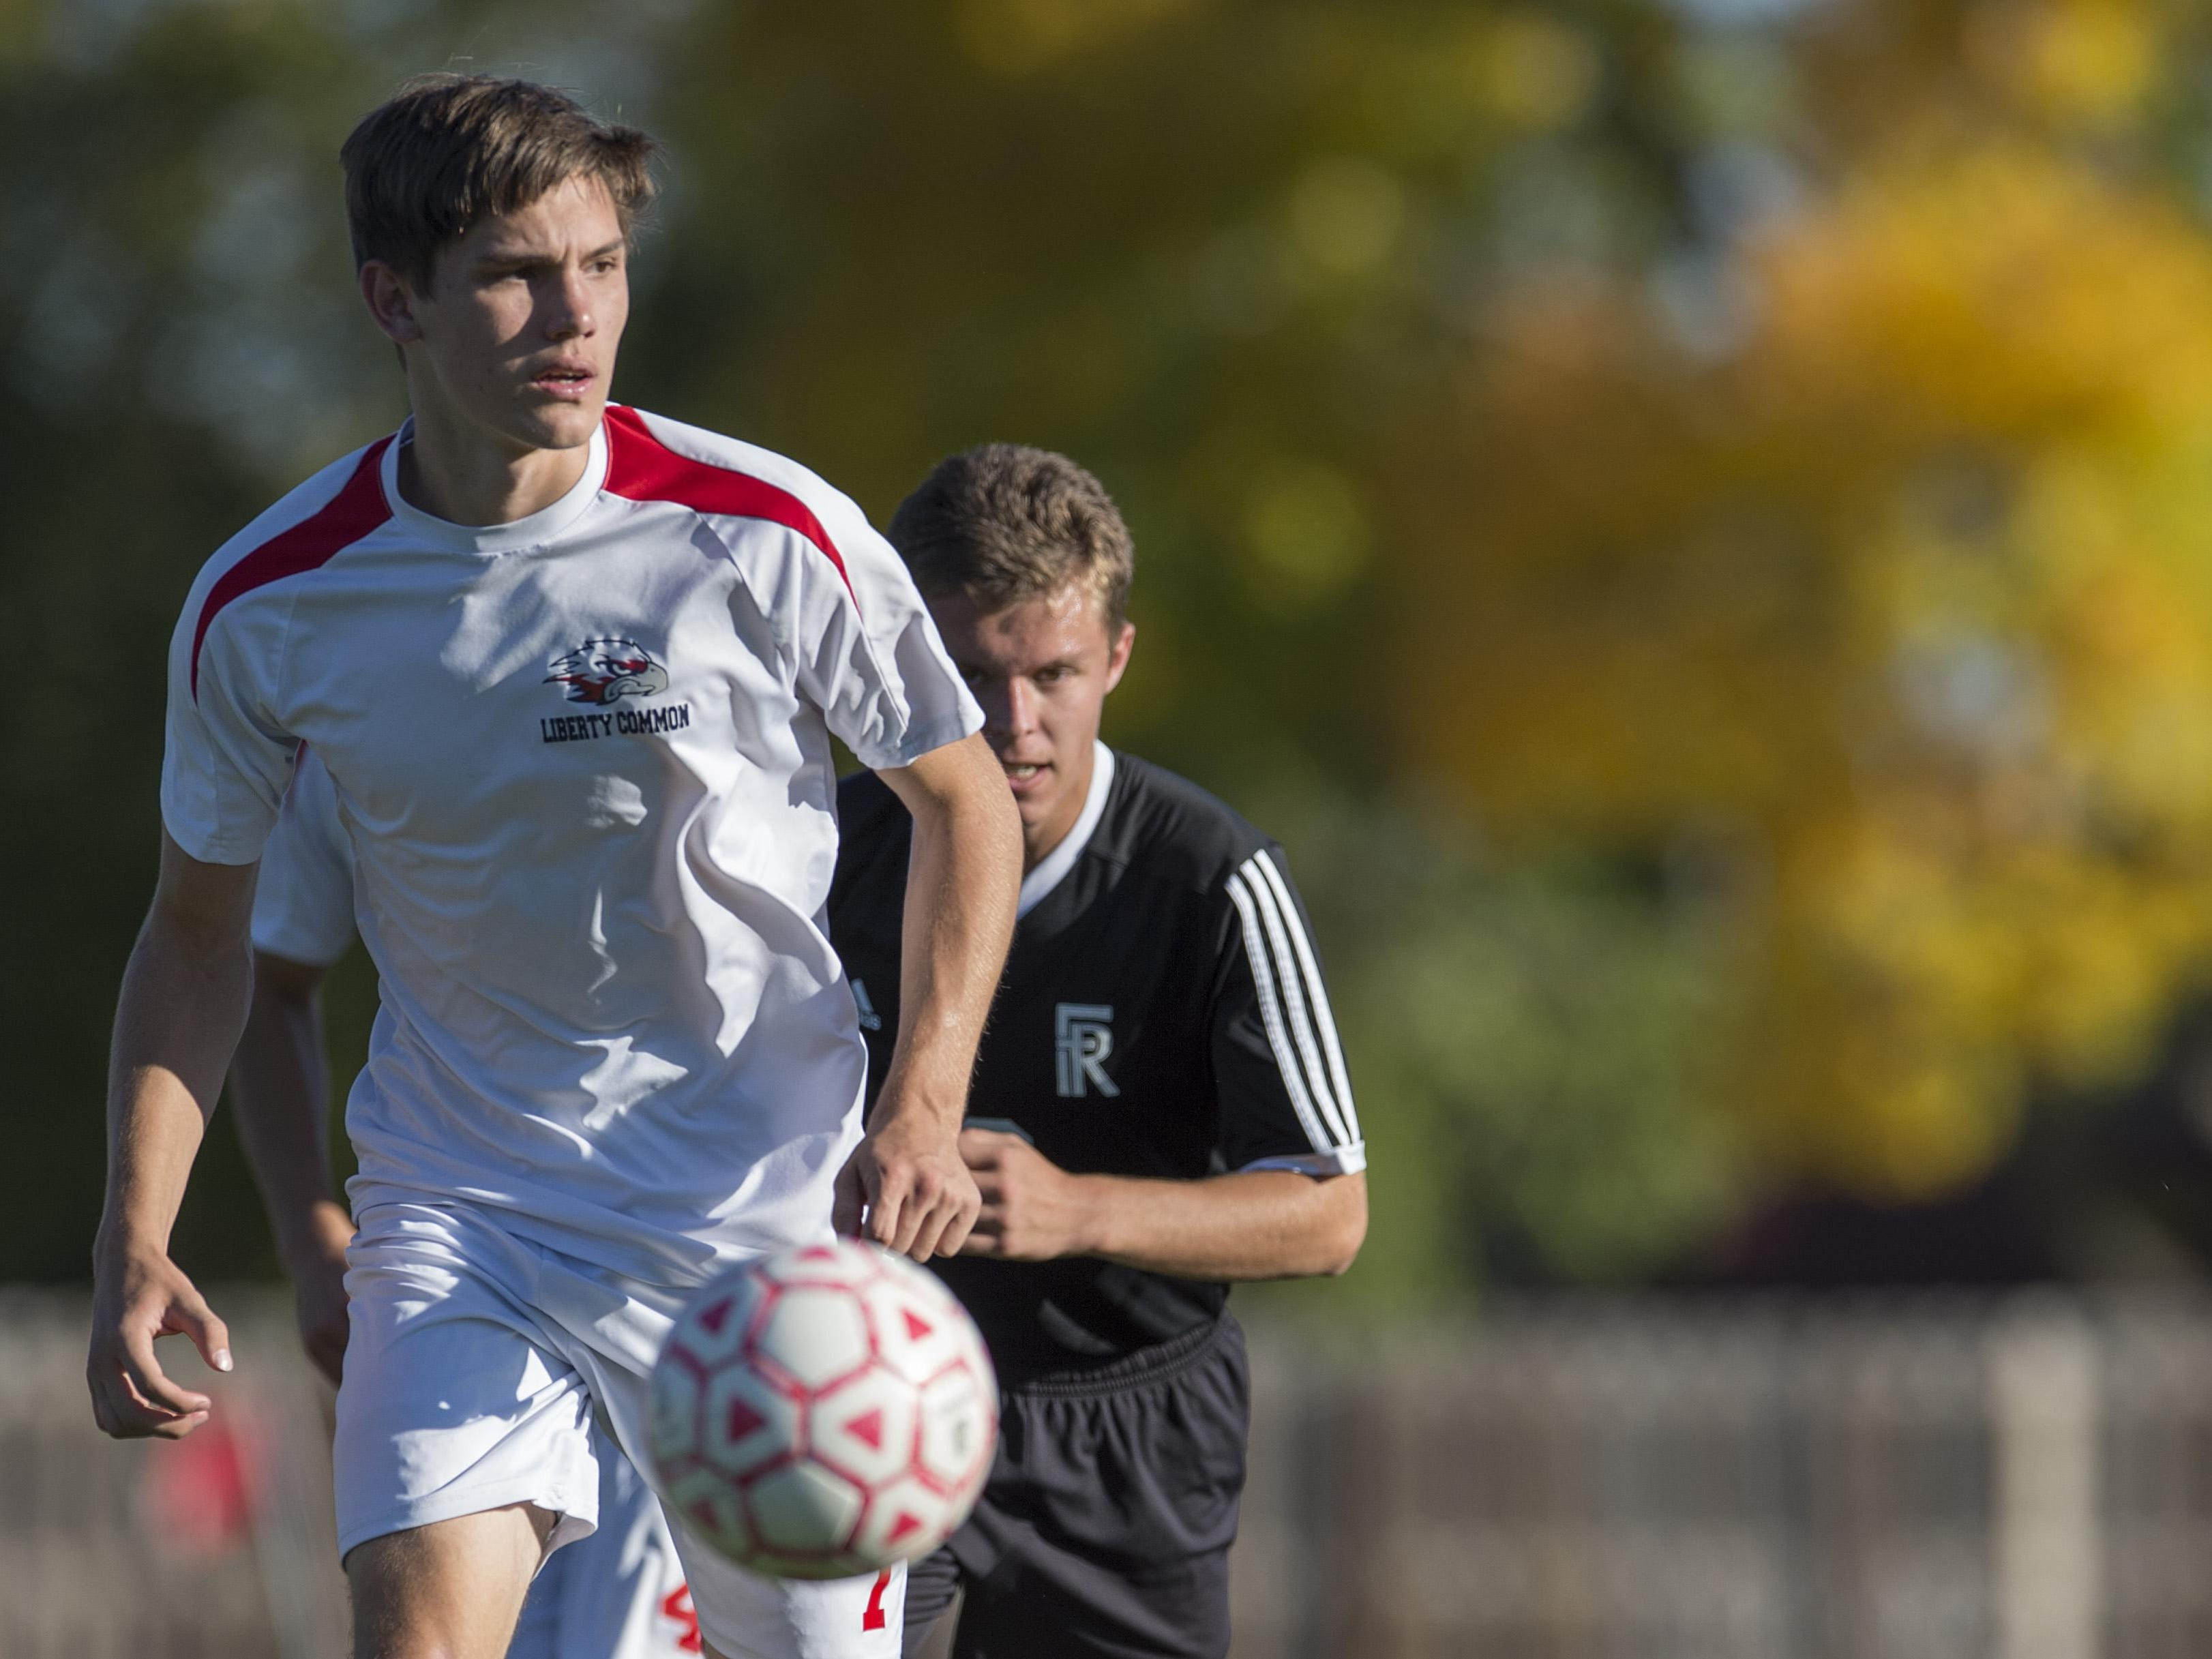 Rob Knab of Liberty Common is second among area players in goals and the Eagles are ranked No. 4 in Class 3A.